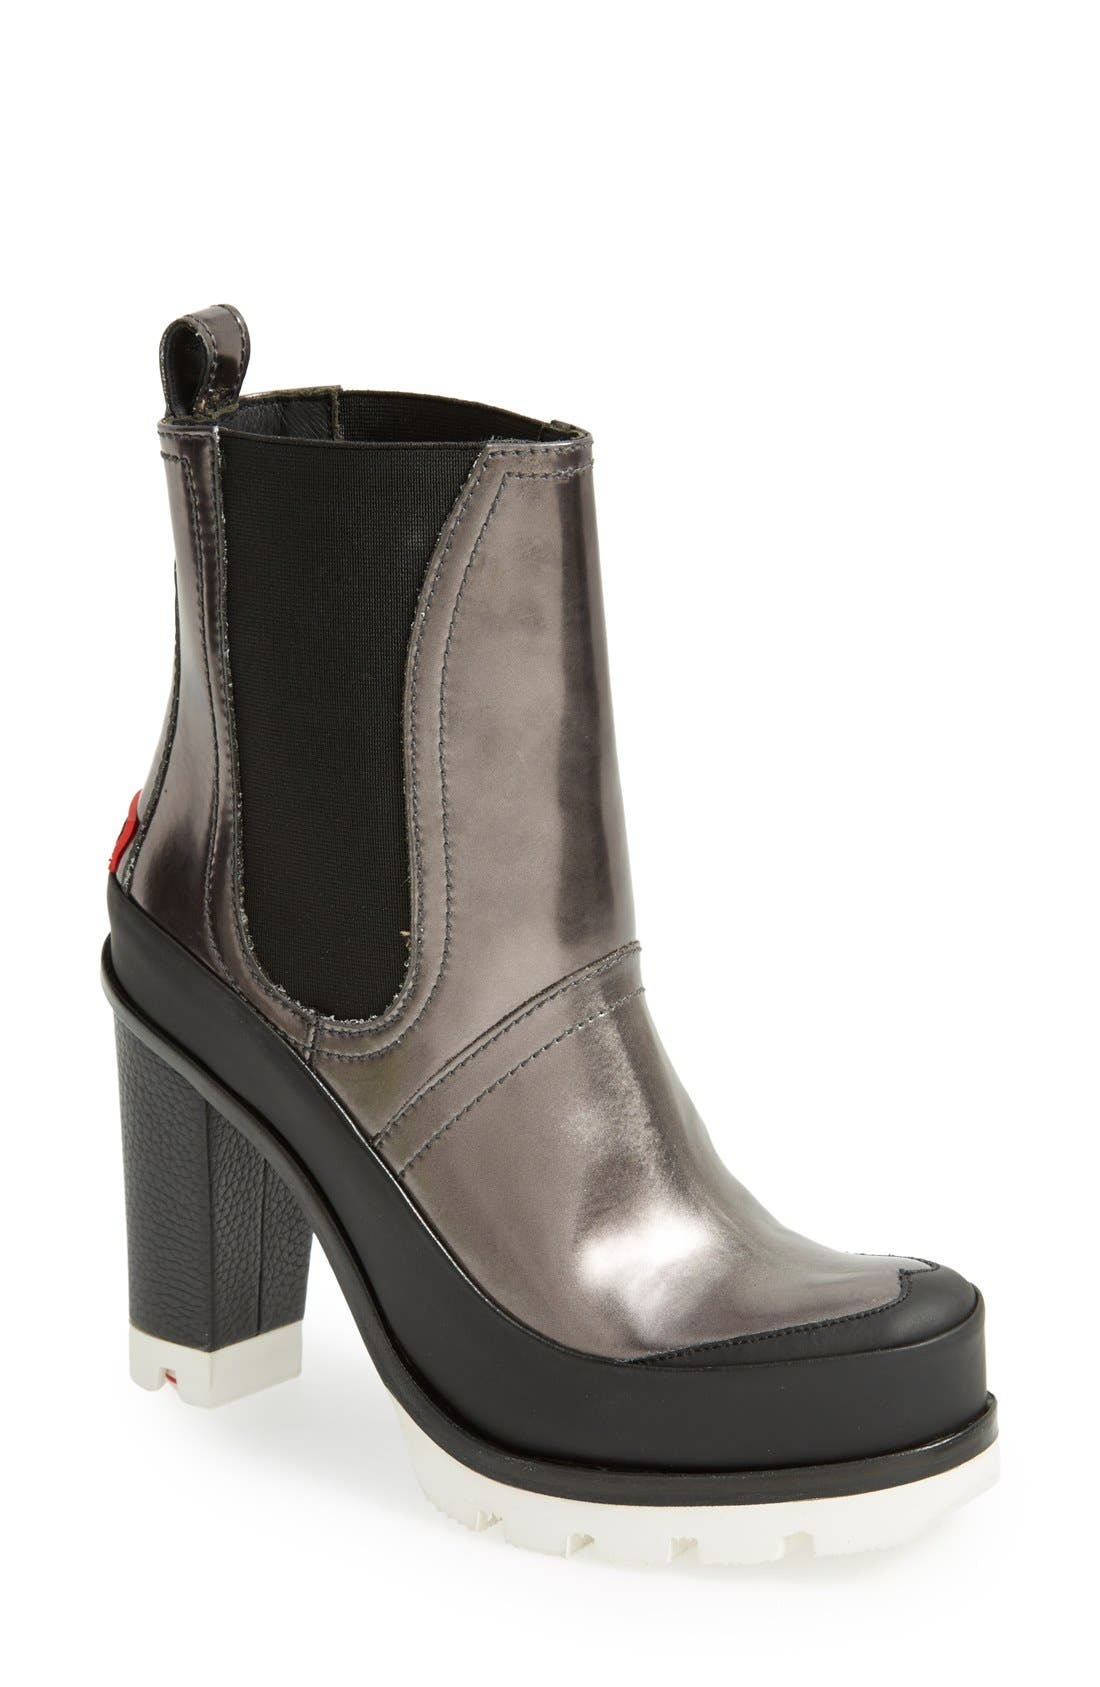 Alternate Image 1 Selected - Hunter 'Original - High Heel' Chelsea Rain Boot (Women)